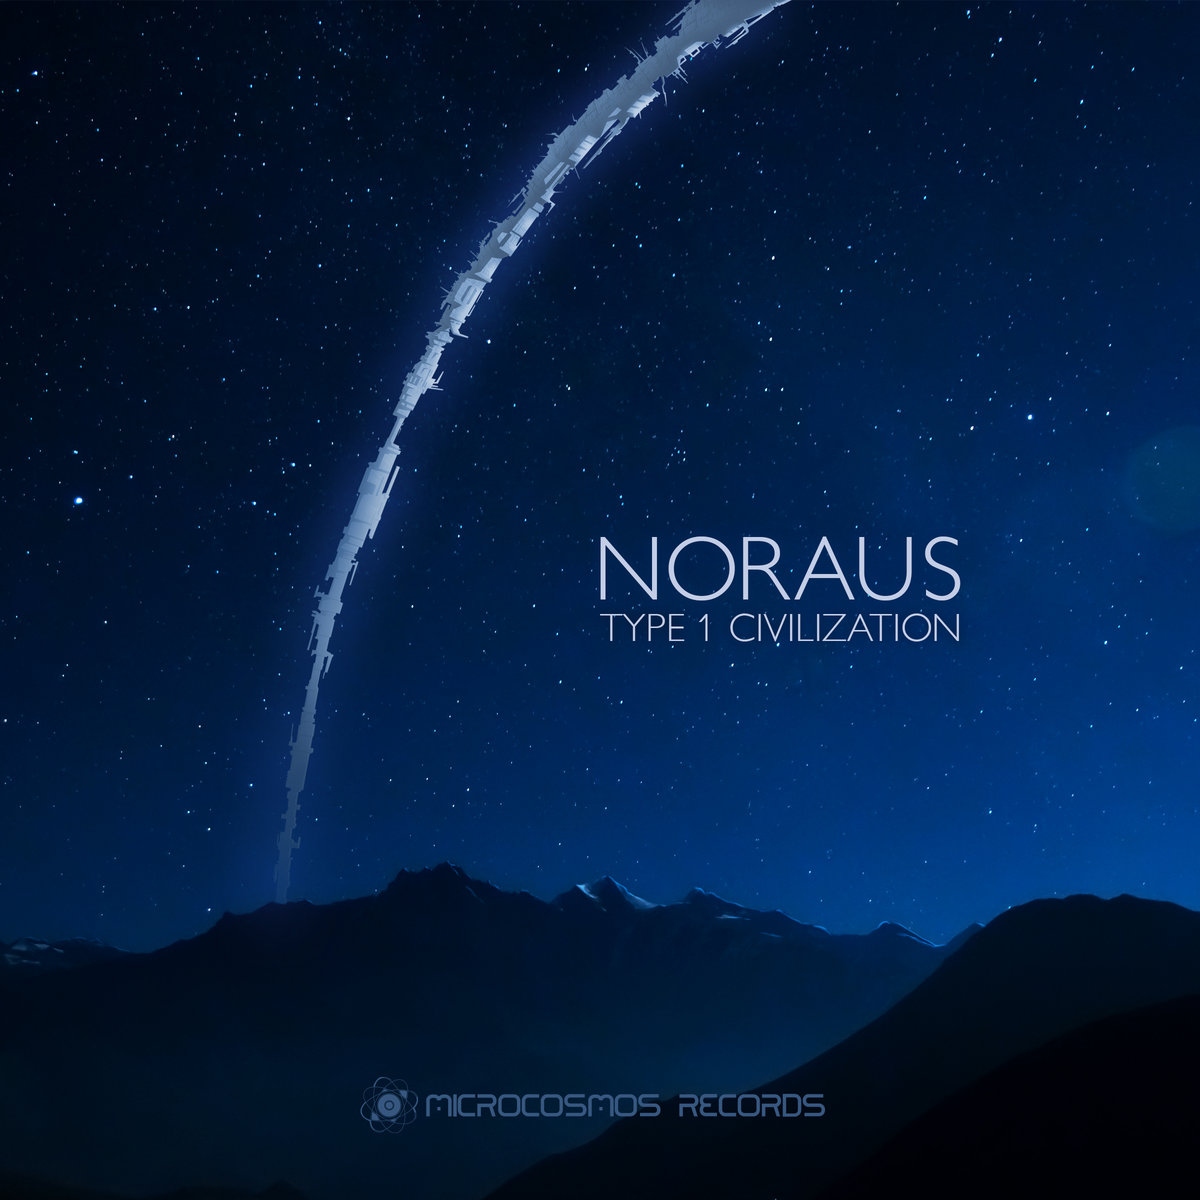 Noraus - Fludentri @ 'Type 1 Civilization' album (ambient, chill-out)